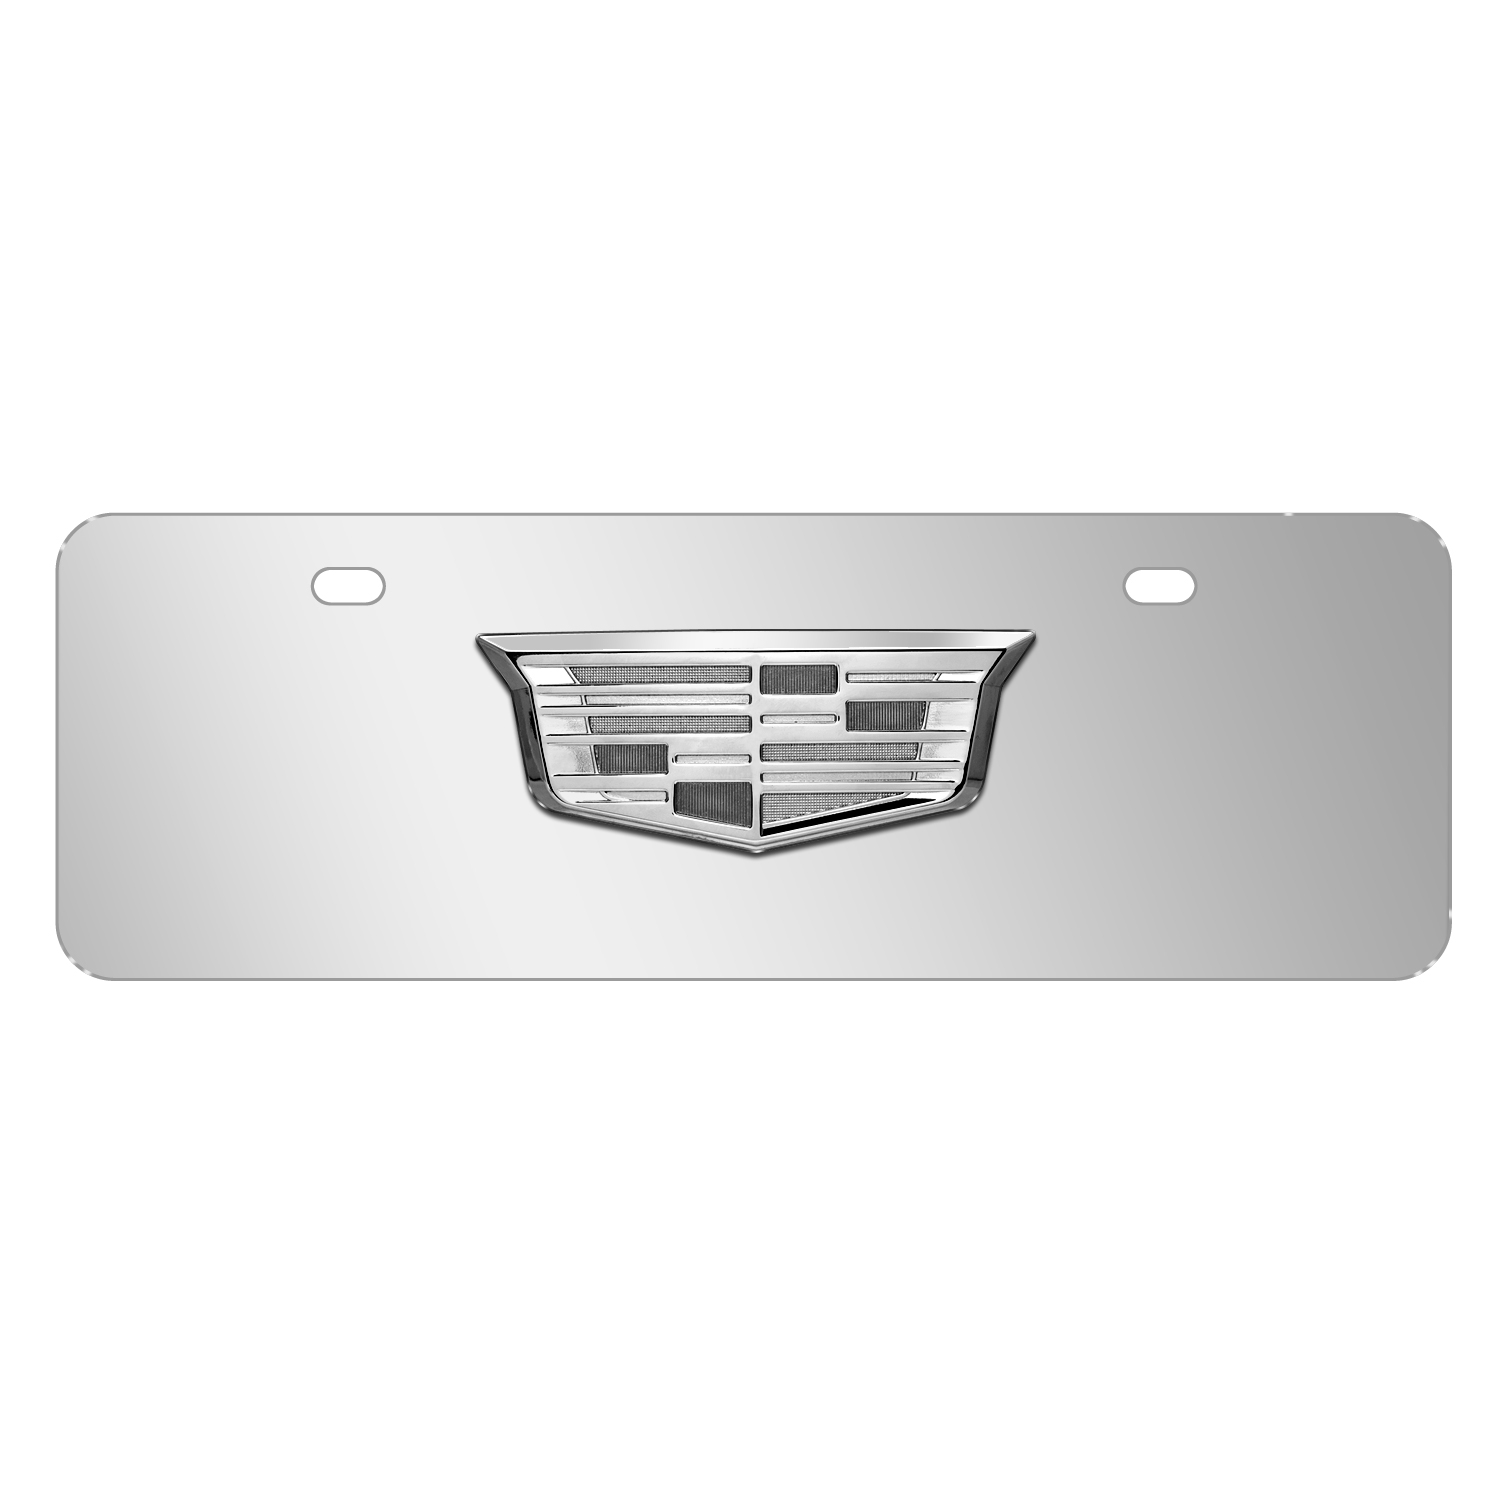 """Cadillac 3D Crest Chrome Metal Logo Mirror Chrome 12""""x4"""" Half-Size Stainless Steel License Plate"""